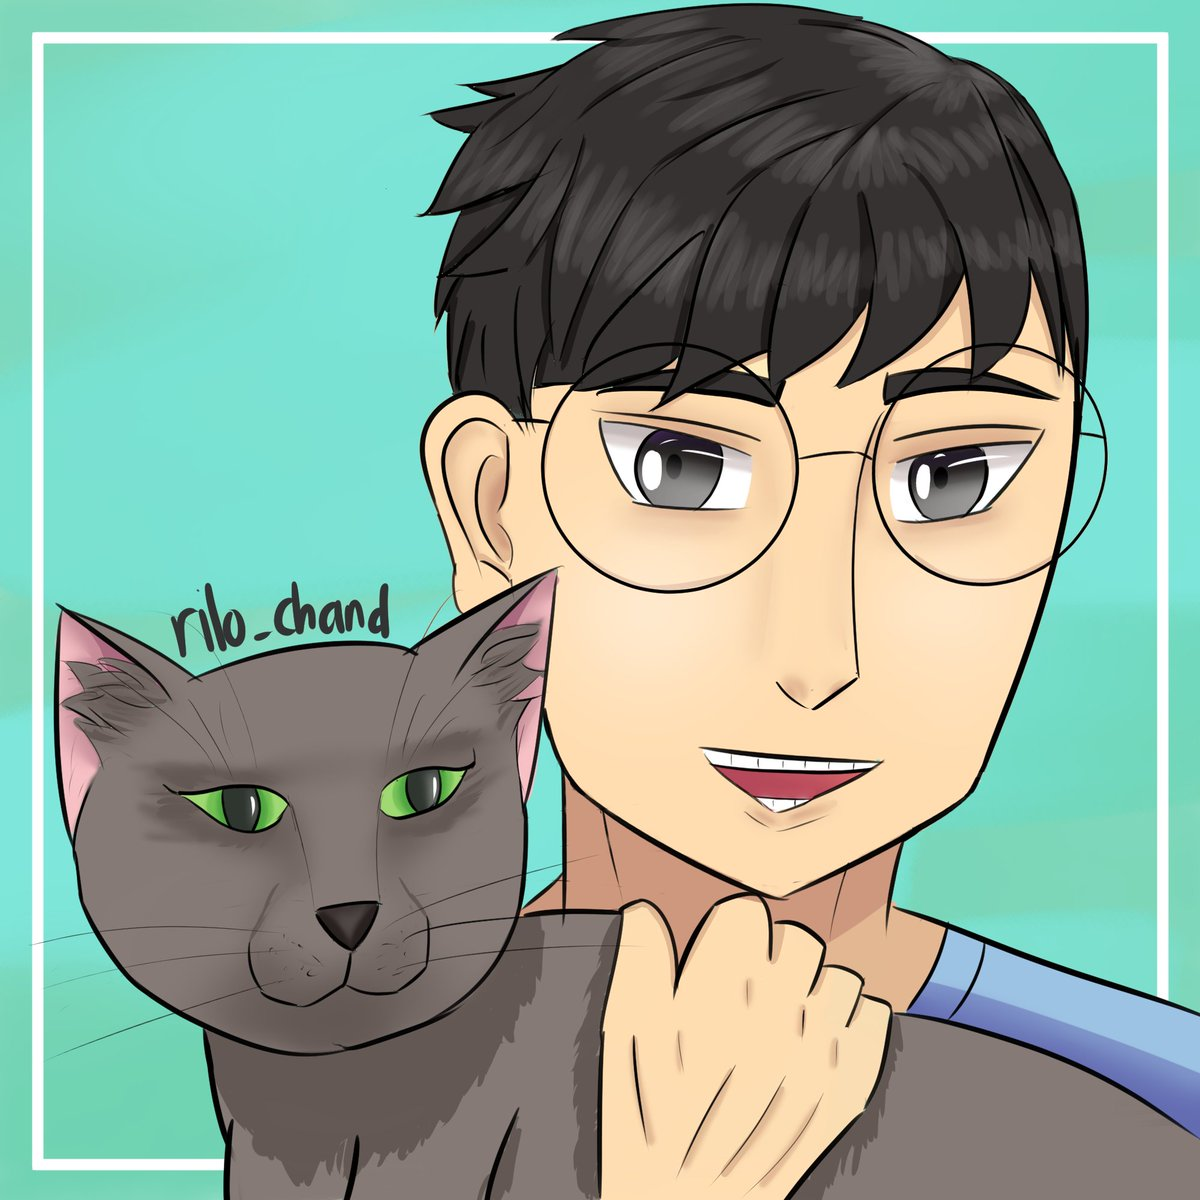 Hey! Rezy's here, and now I'm with Ryu, my cat who likes to climb everything in my room. He loves the high place, perhaps?  Pas banget abis export gambar ini, trial csp abis :( mau ngedit hal-hal kecil jadi gabisa hiks. Saatnya pindah ke medibang  #artwork #drawing #oc #cats